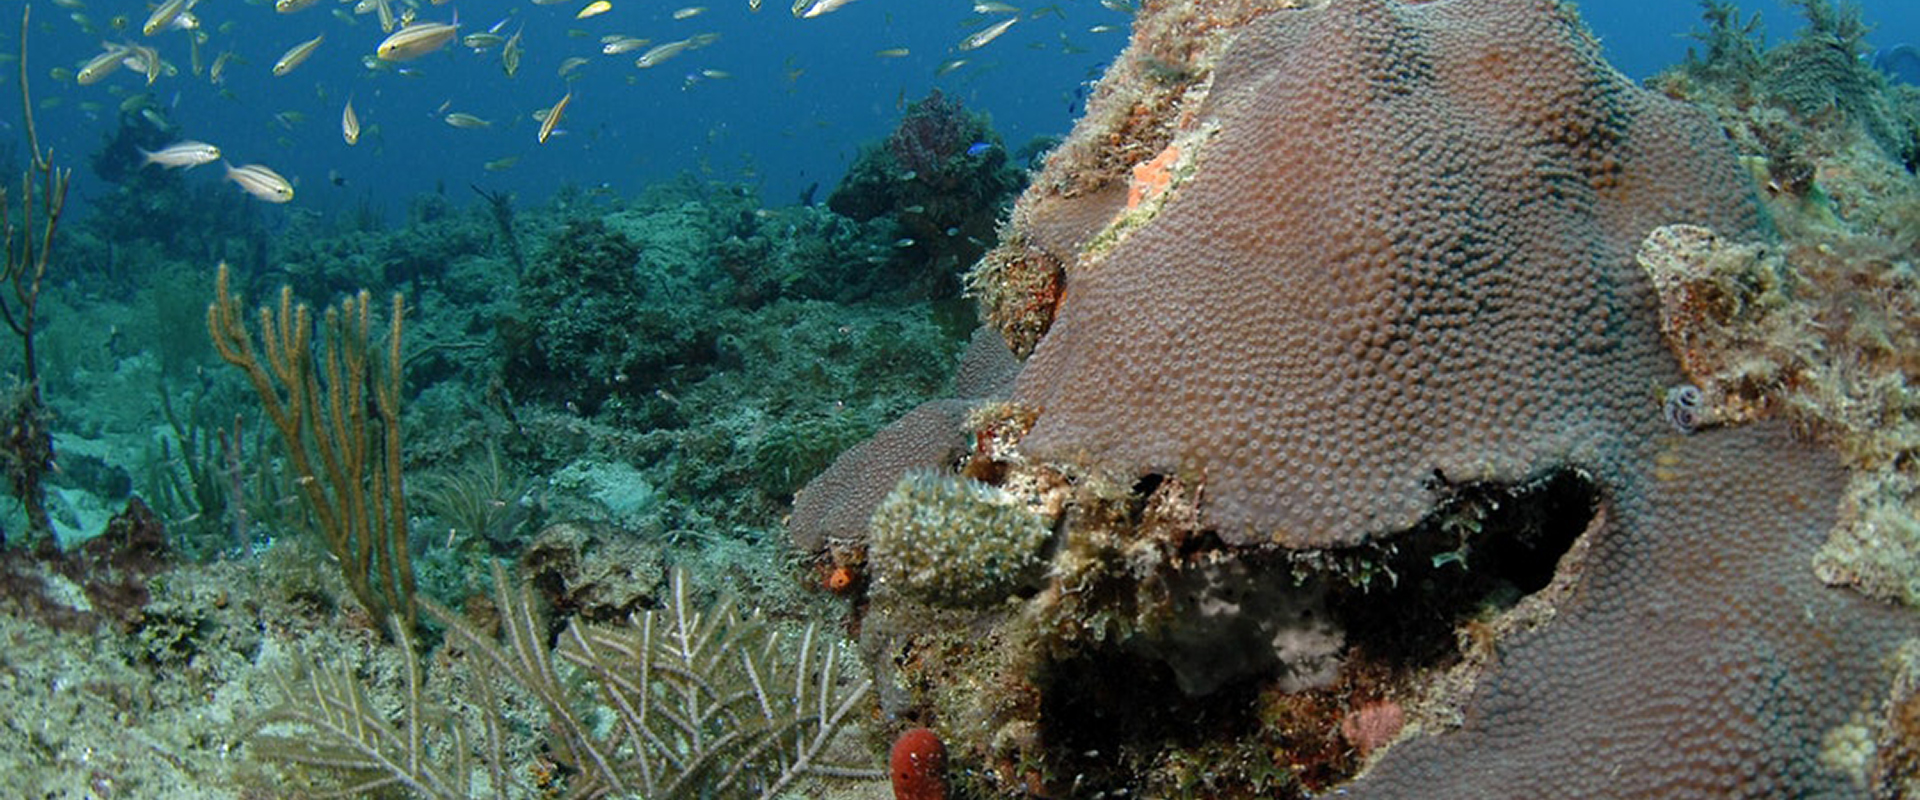 Private: Fisheries and Conservation in the Coral ECA: A Stakeholder Process